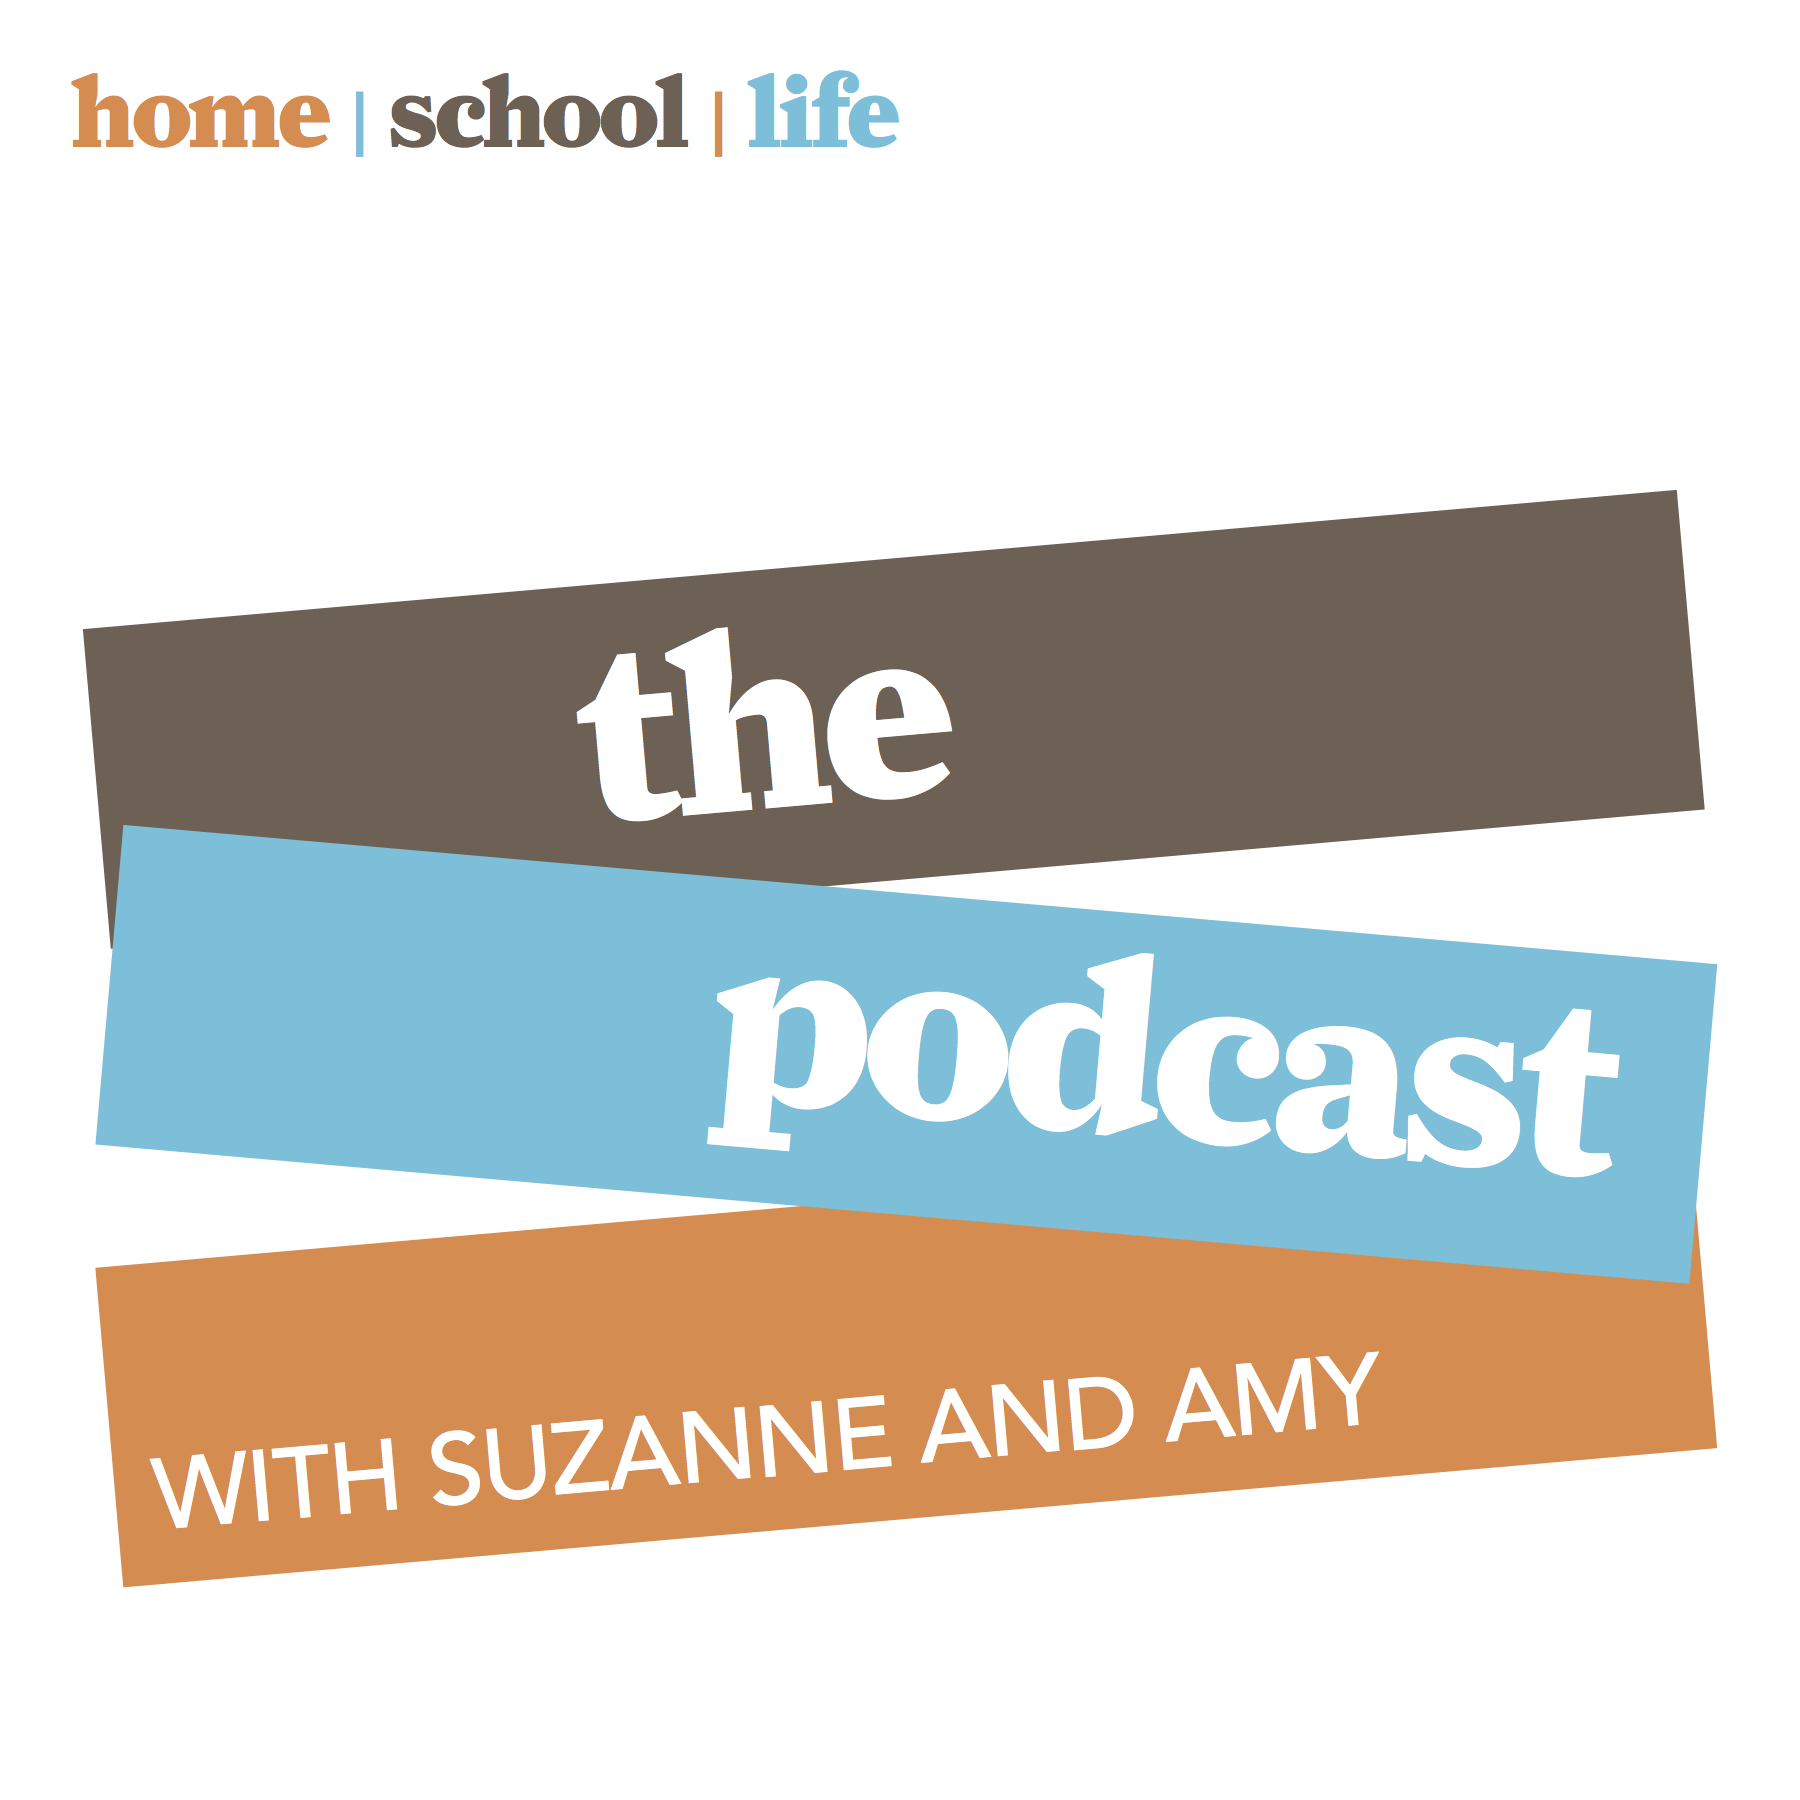 Episode 1: home/school/life magazine's The Podcast with Suzanne and Amy #homeschool